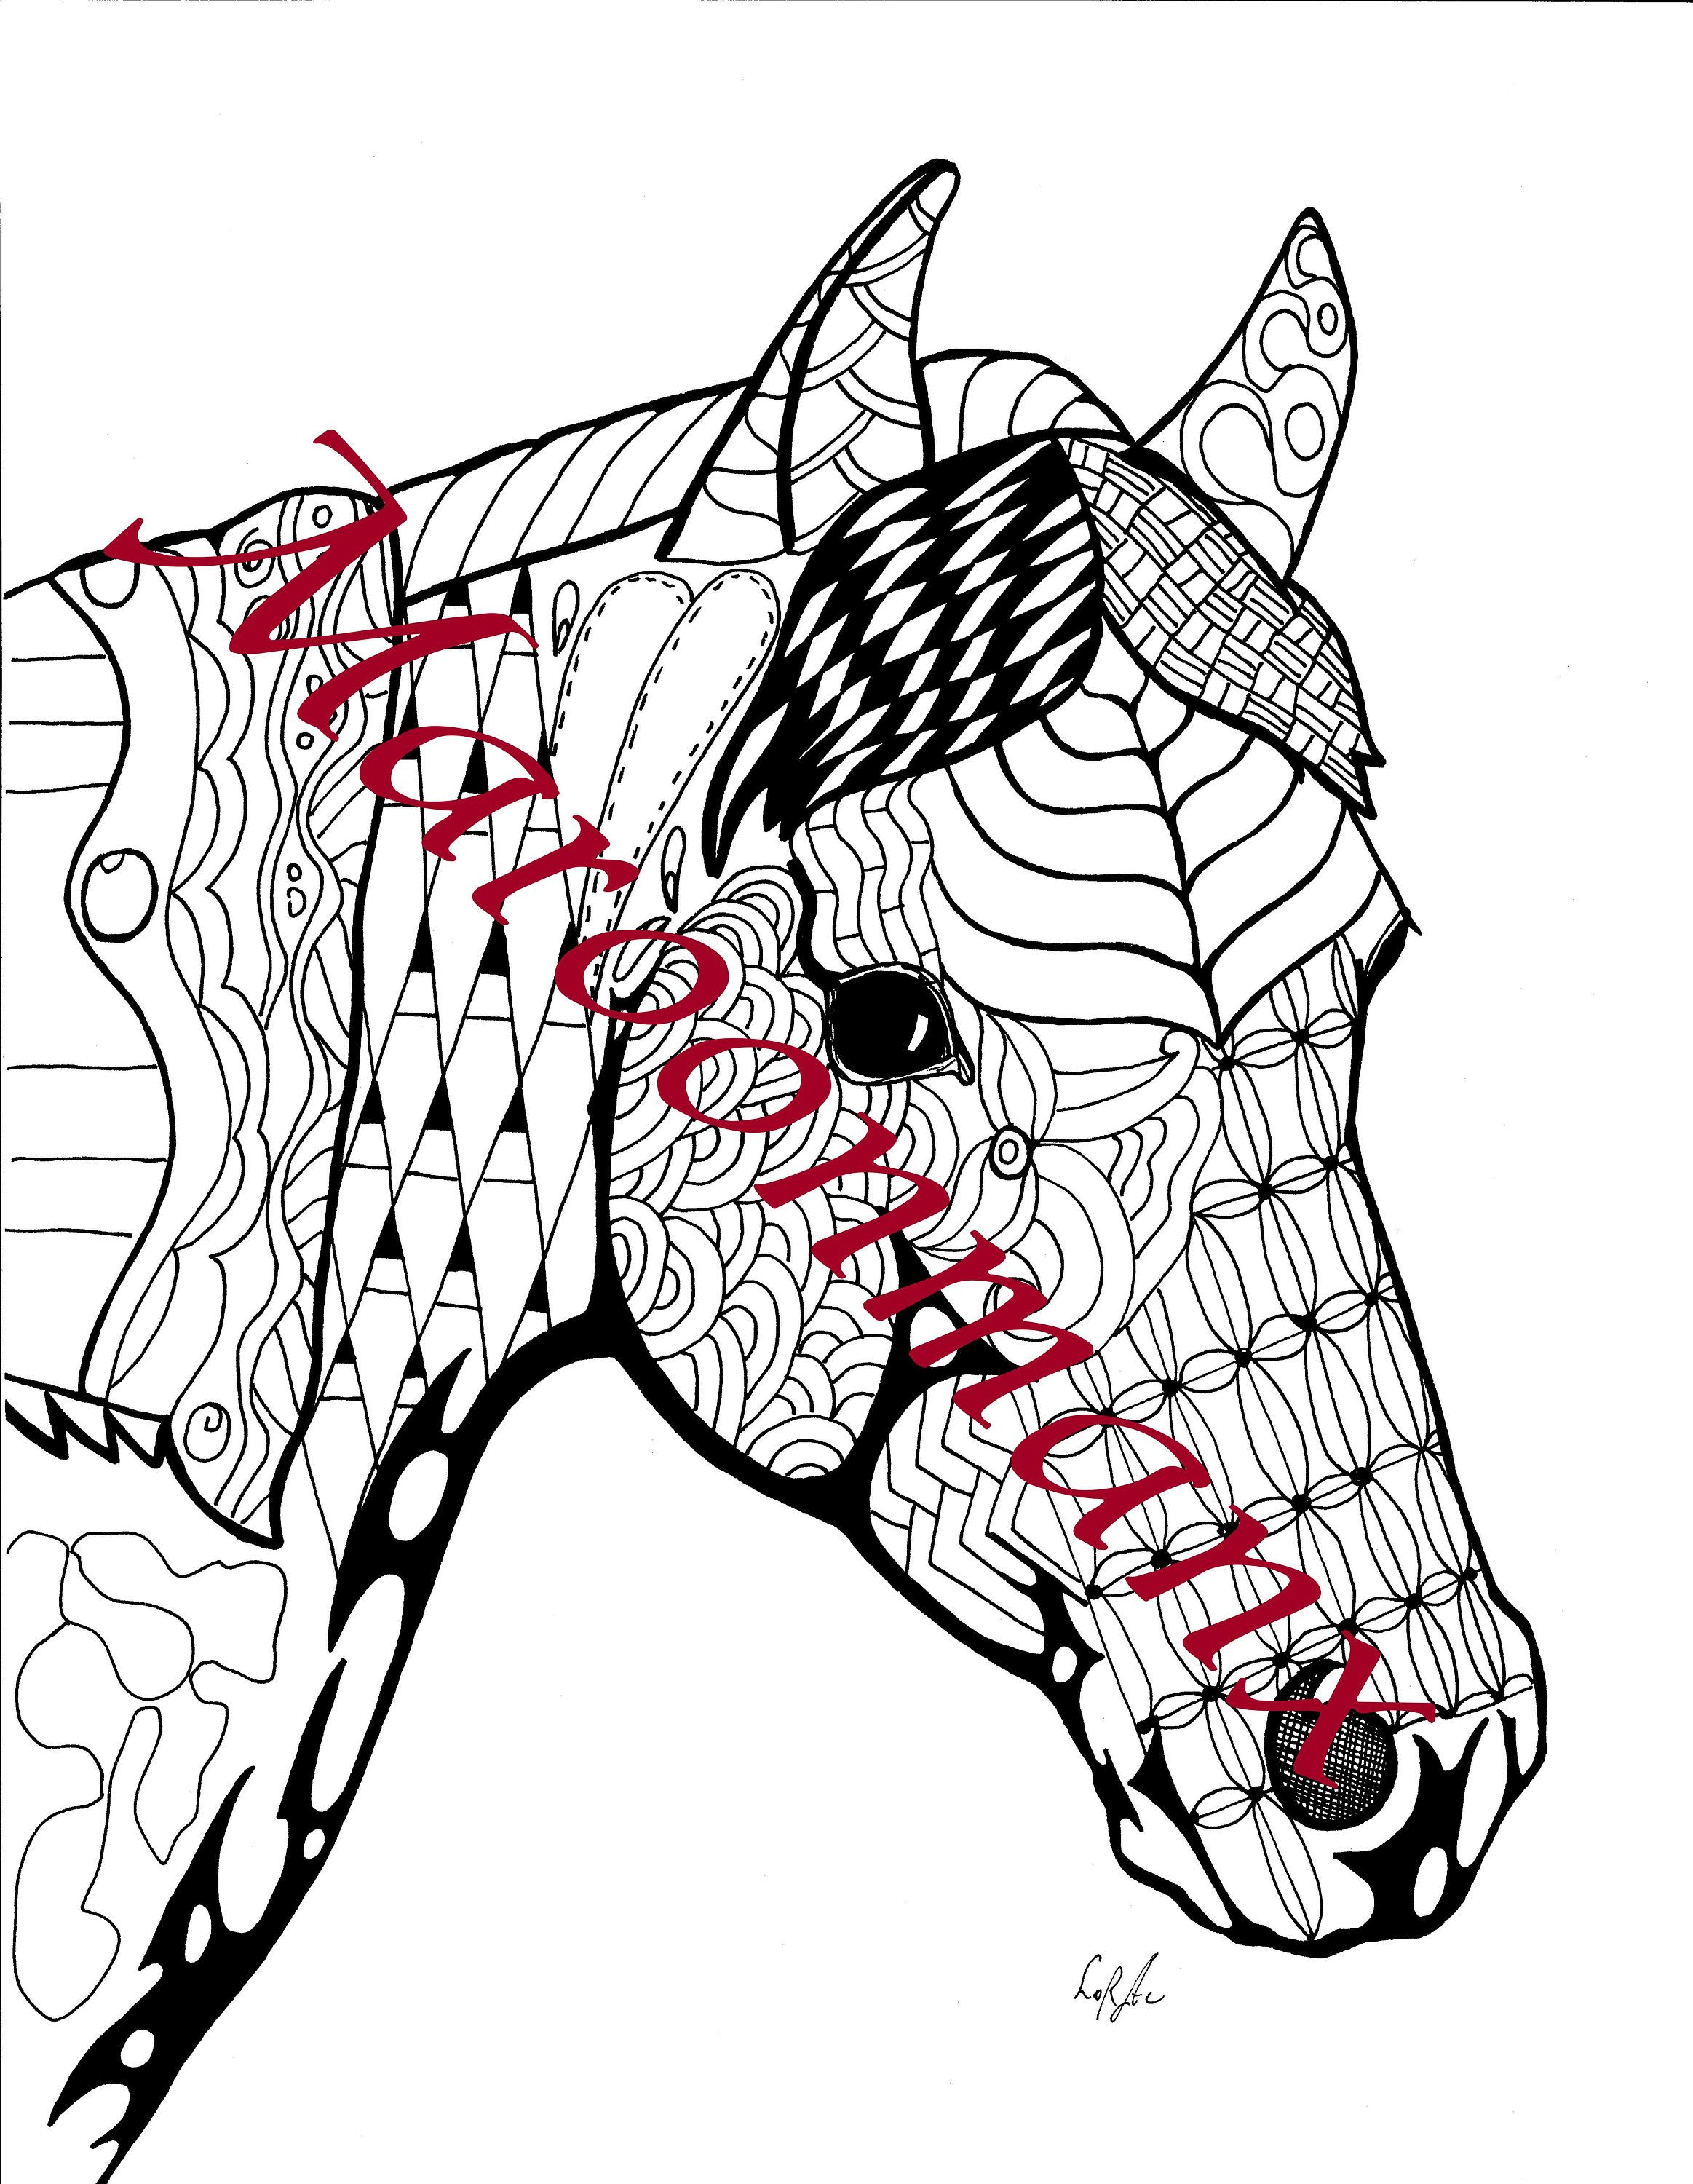 Dollar Deal Arabian Horse Coloring Page Animal Horse Doodle Art